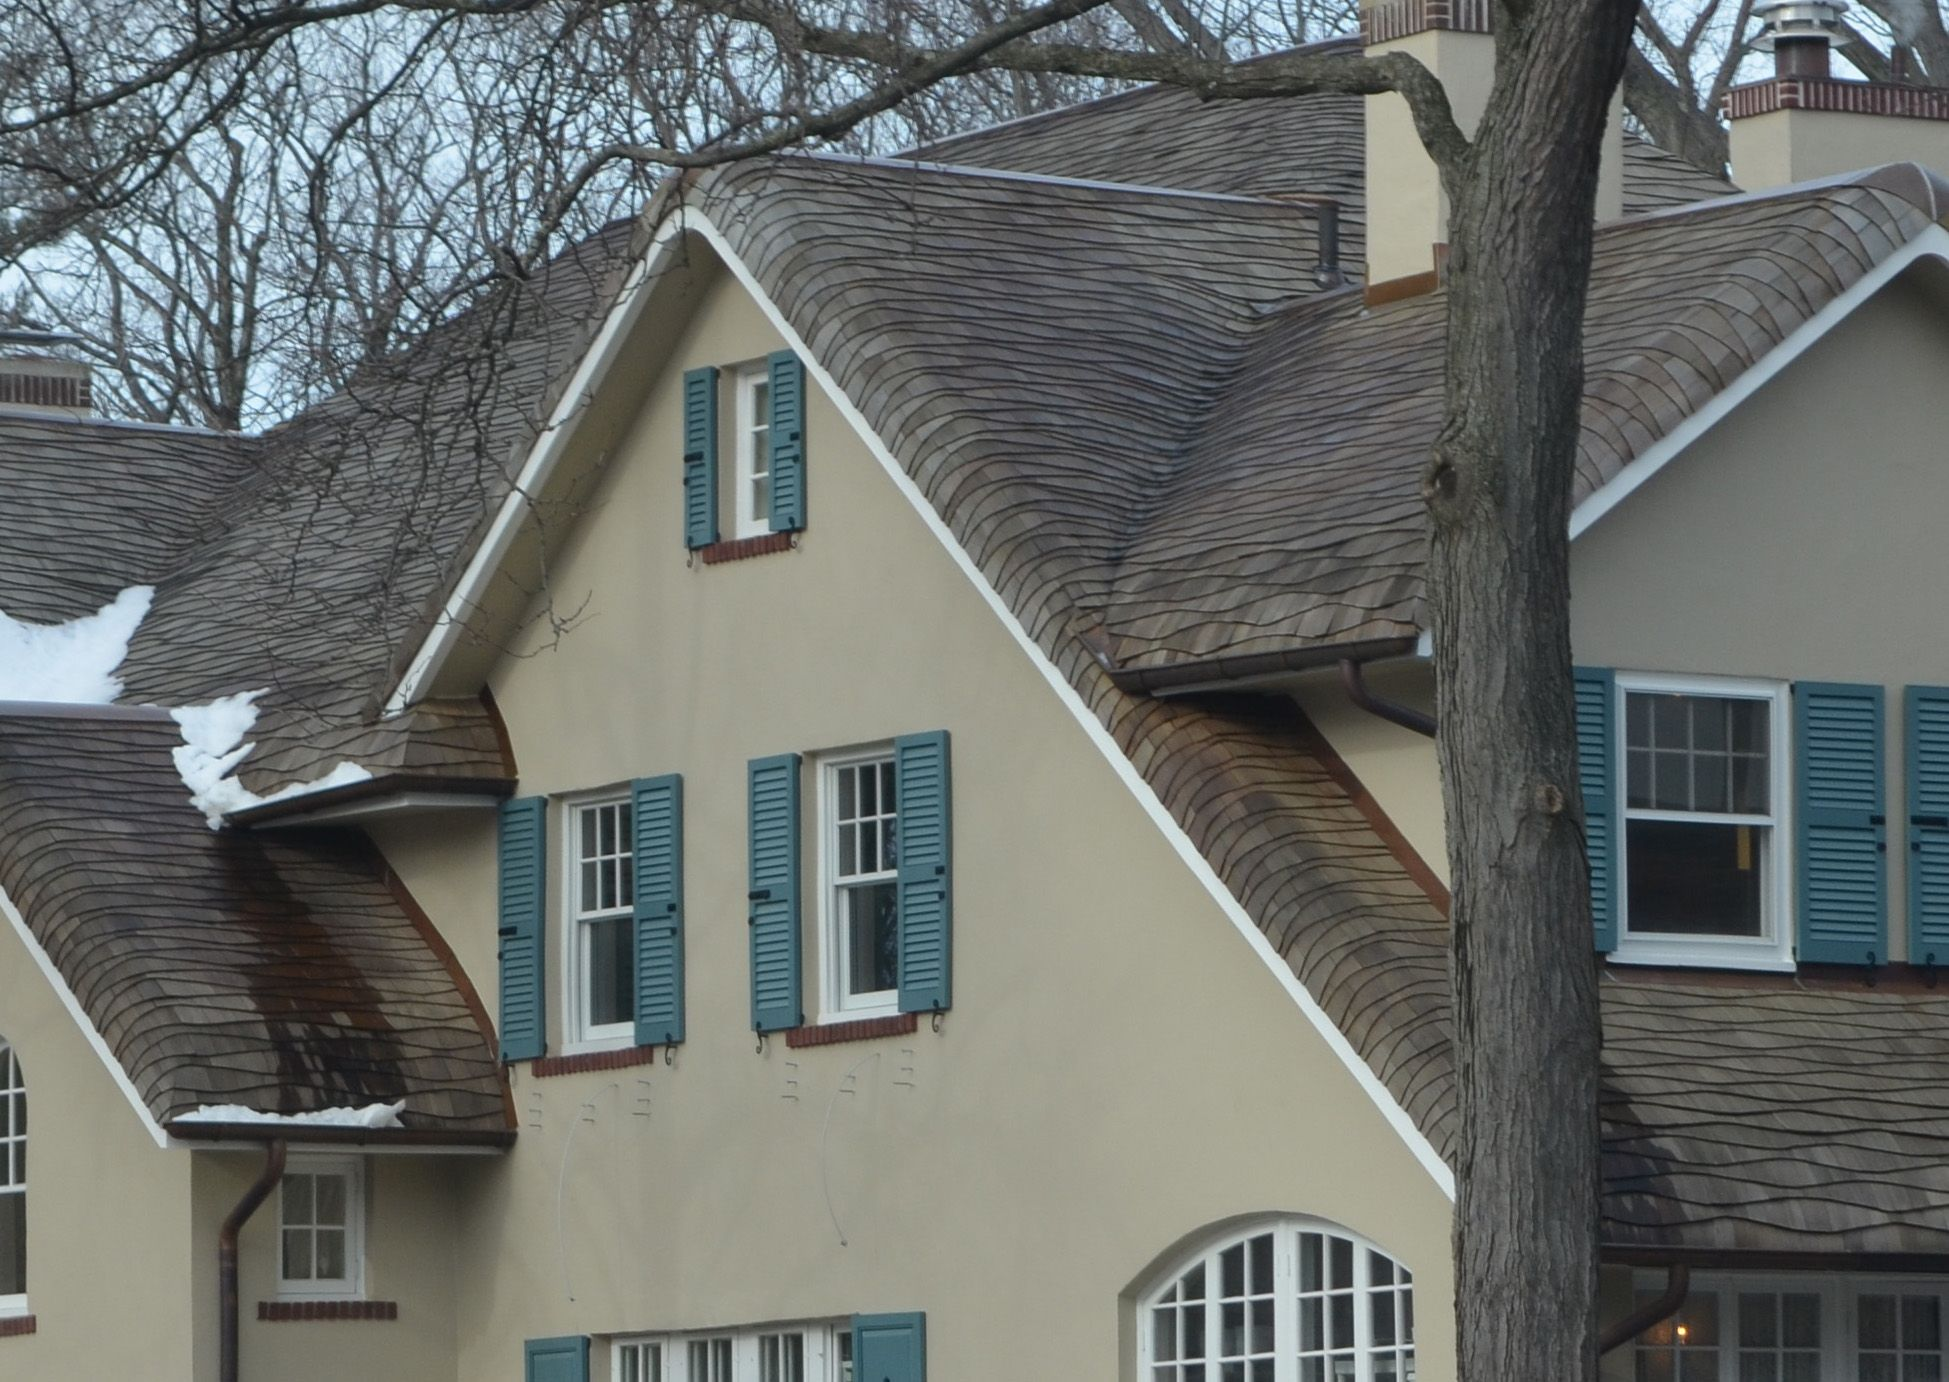 Superb Roofingartisans.com Cedar Roofing Company, Thatched Roof